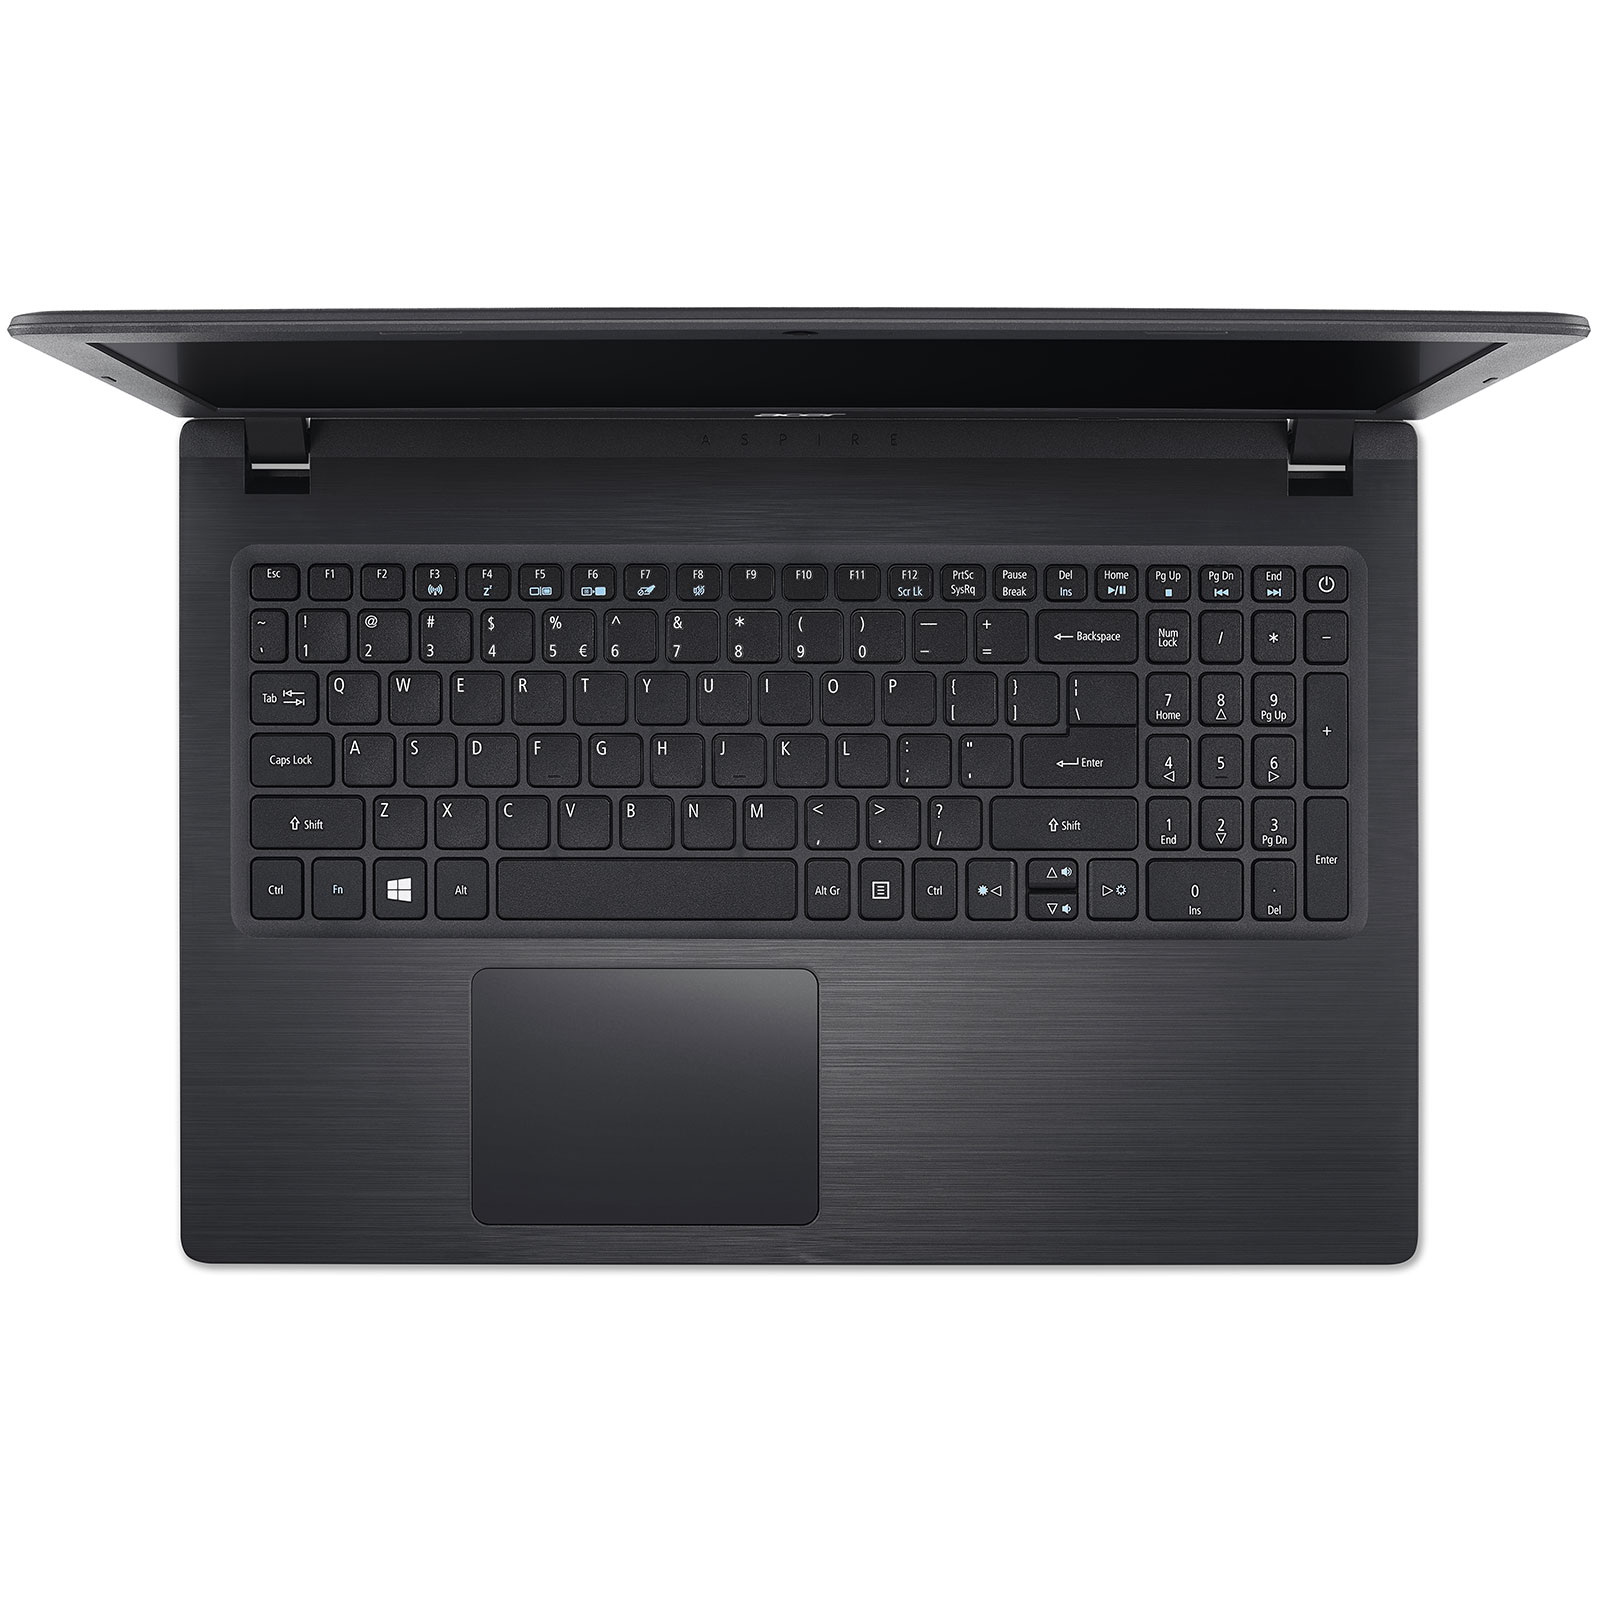 ... PC portable Acer Aspire 3 A315-31-C389 Intel Celeron N3350 4 Go HDD.  Photo(s) non contractuelle(s) c51a760cc09a